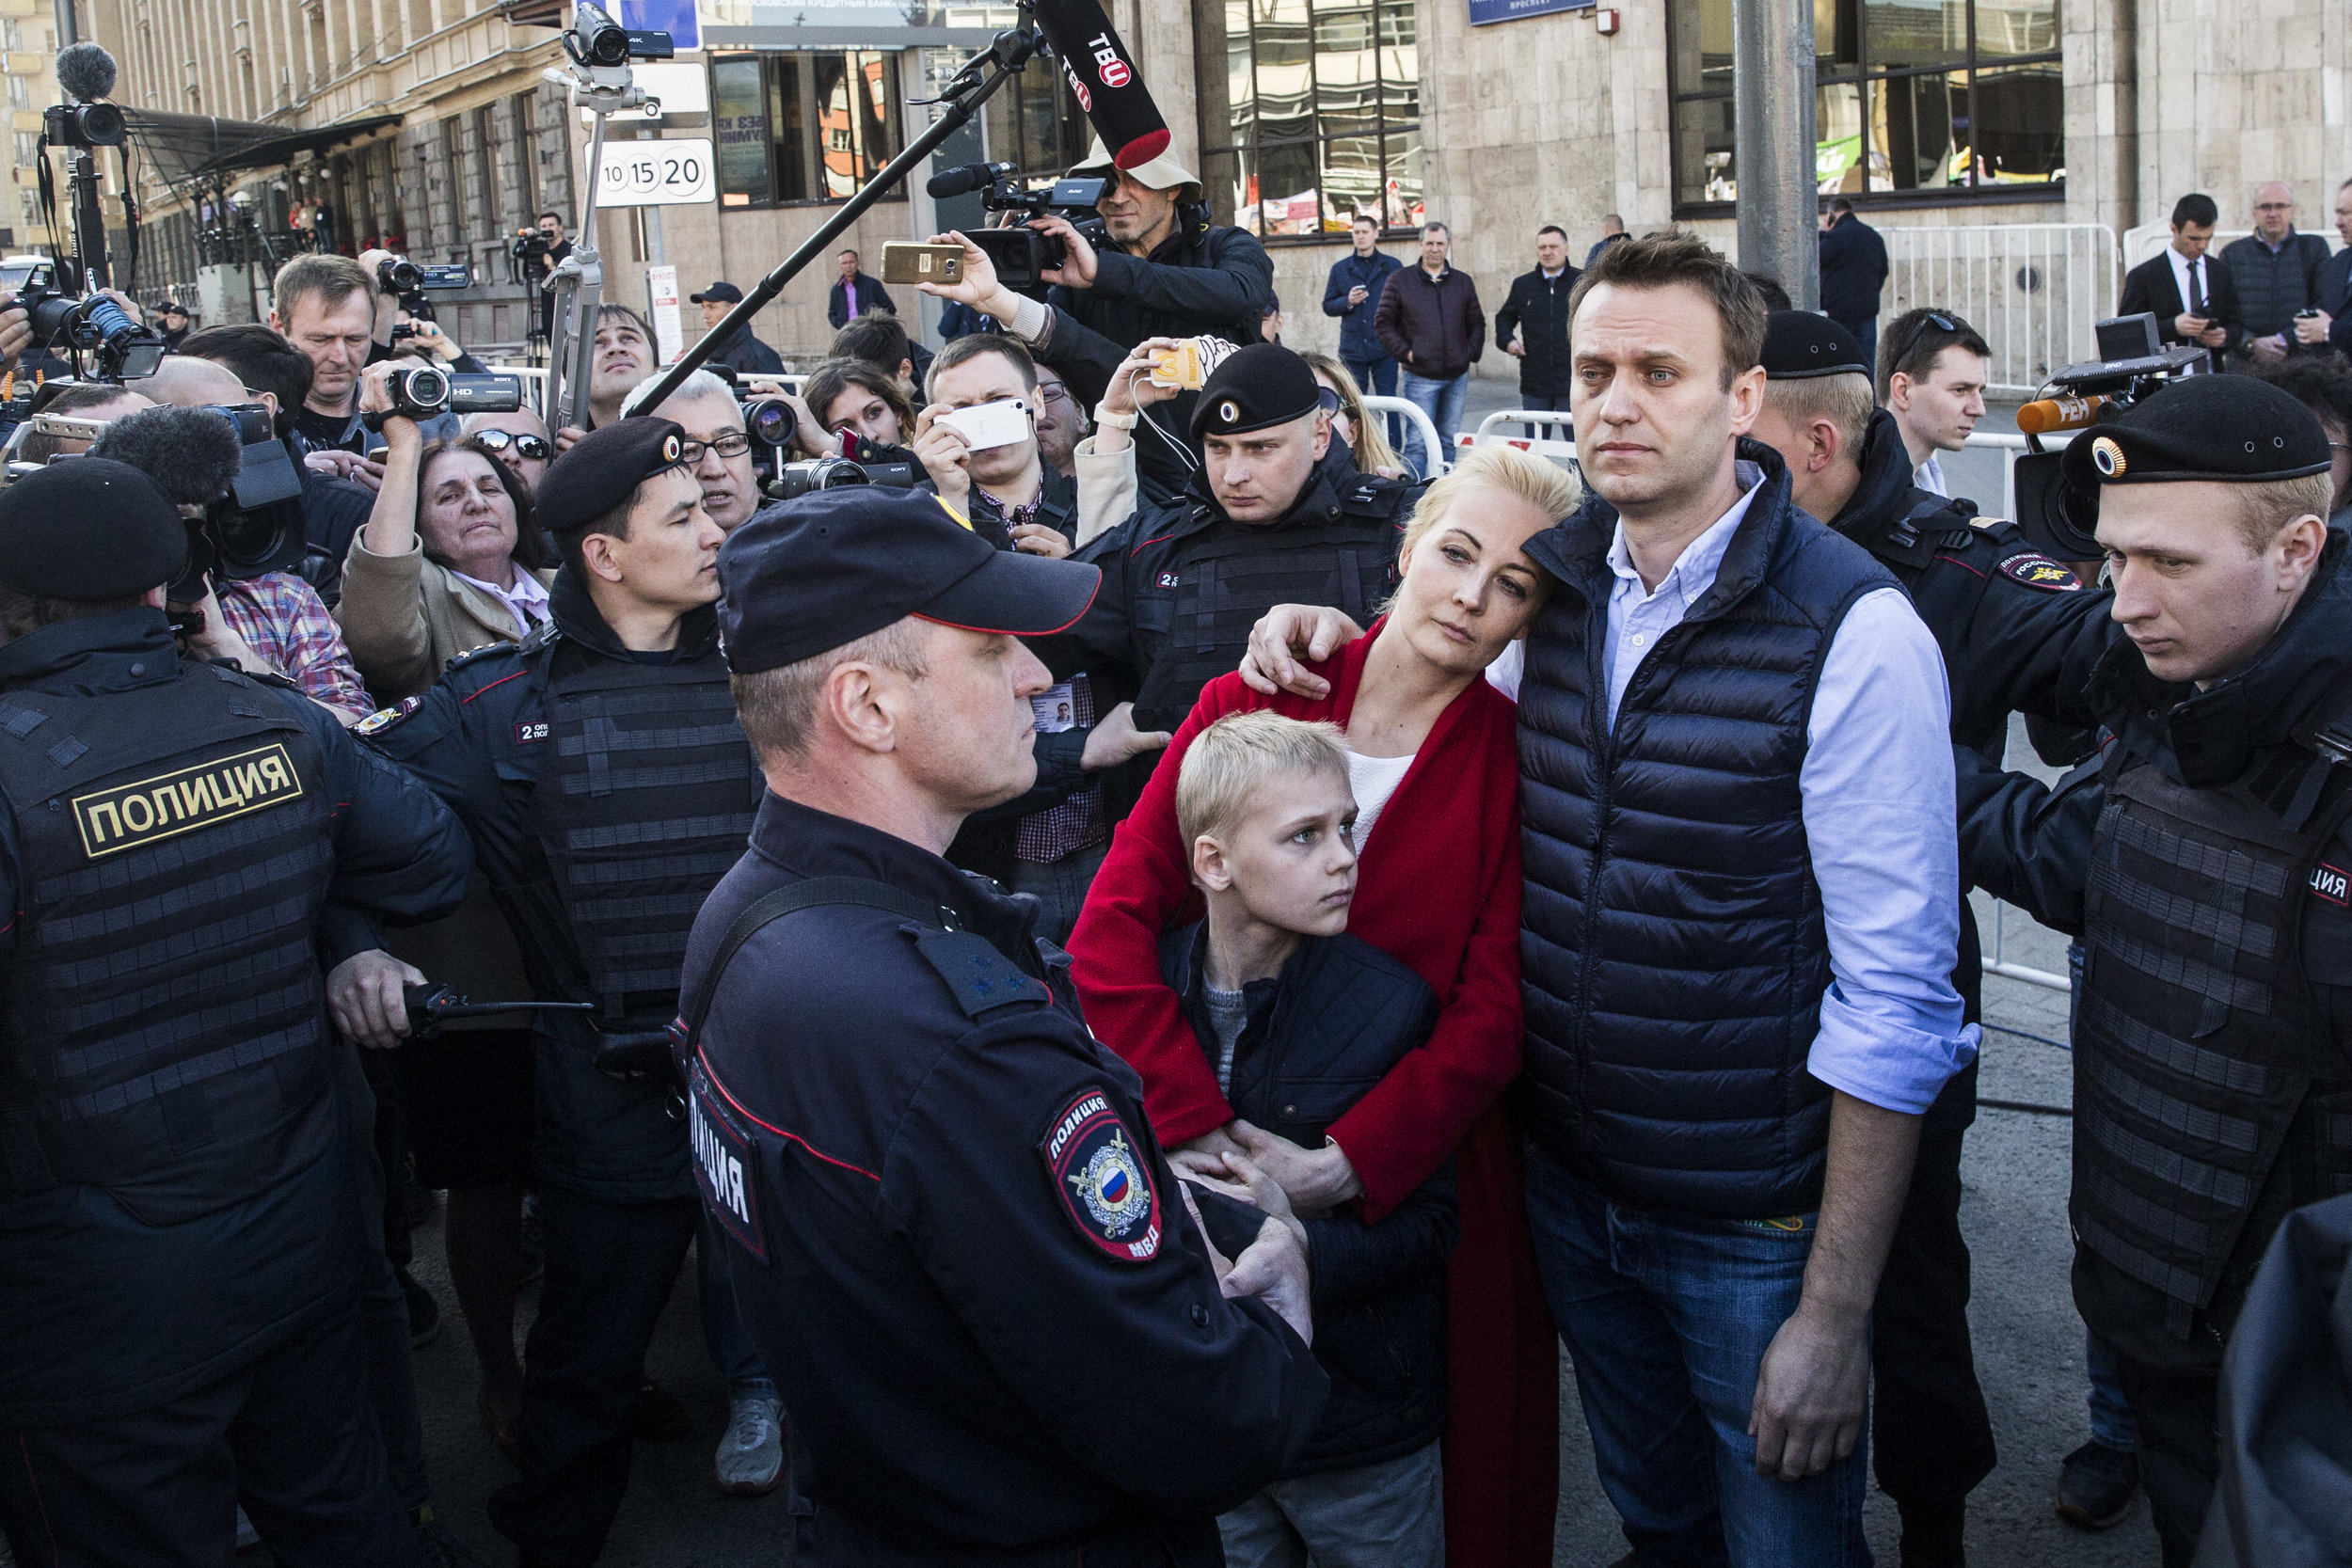 Alexey Navalny, his wife Yulia and son Zakhar are surrounded by the police forces as they are being removed from a protest rally against Moscow mayor